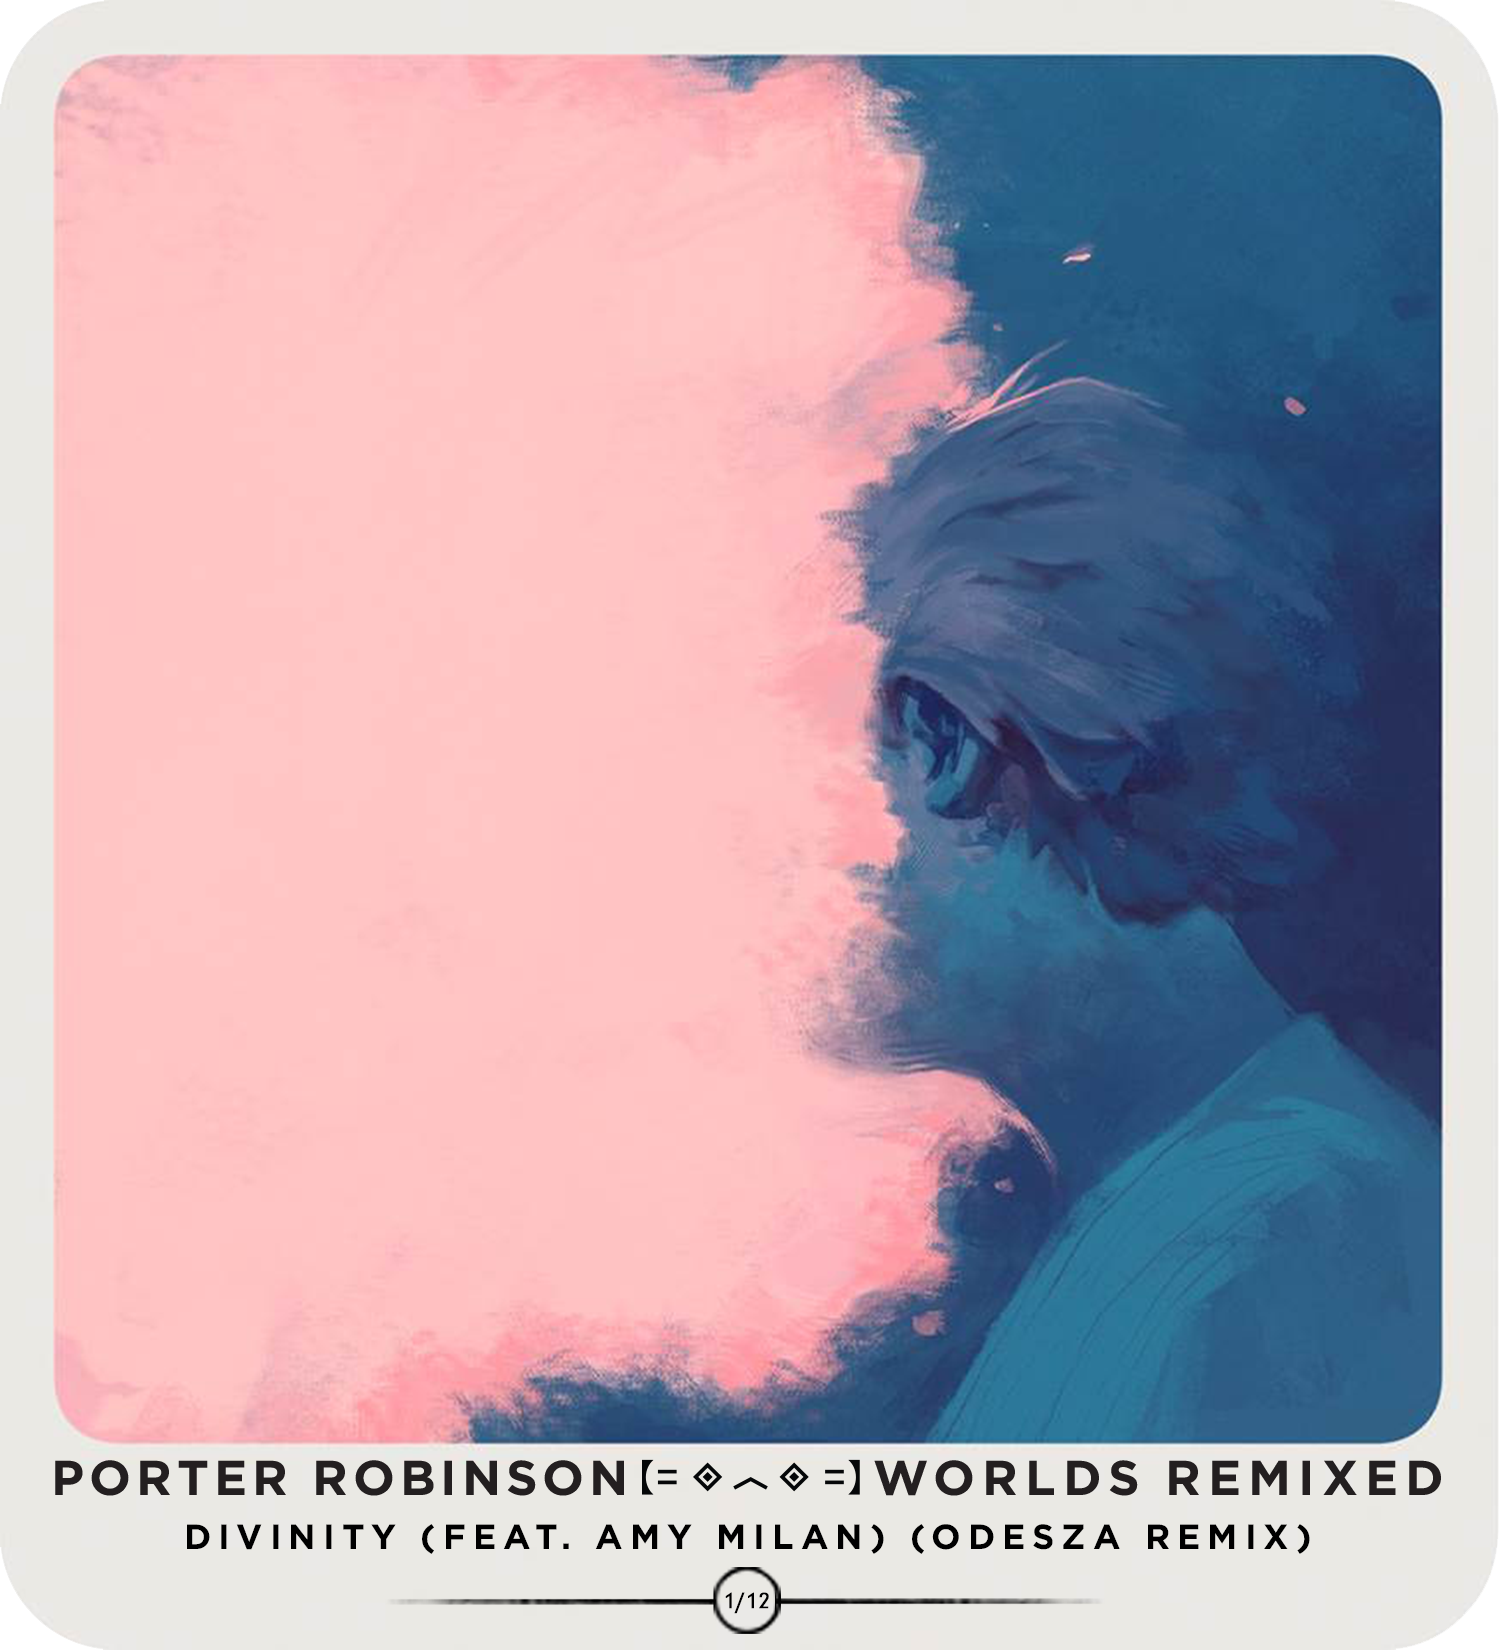 Talking To Porter Robinson About The Fantastical Artwork For Worlds